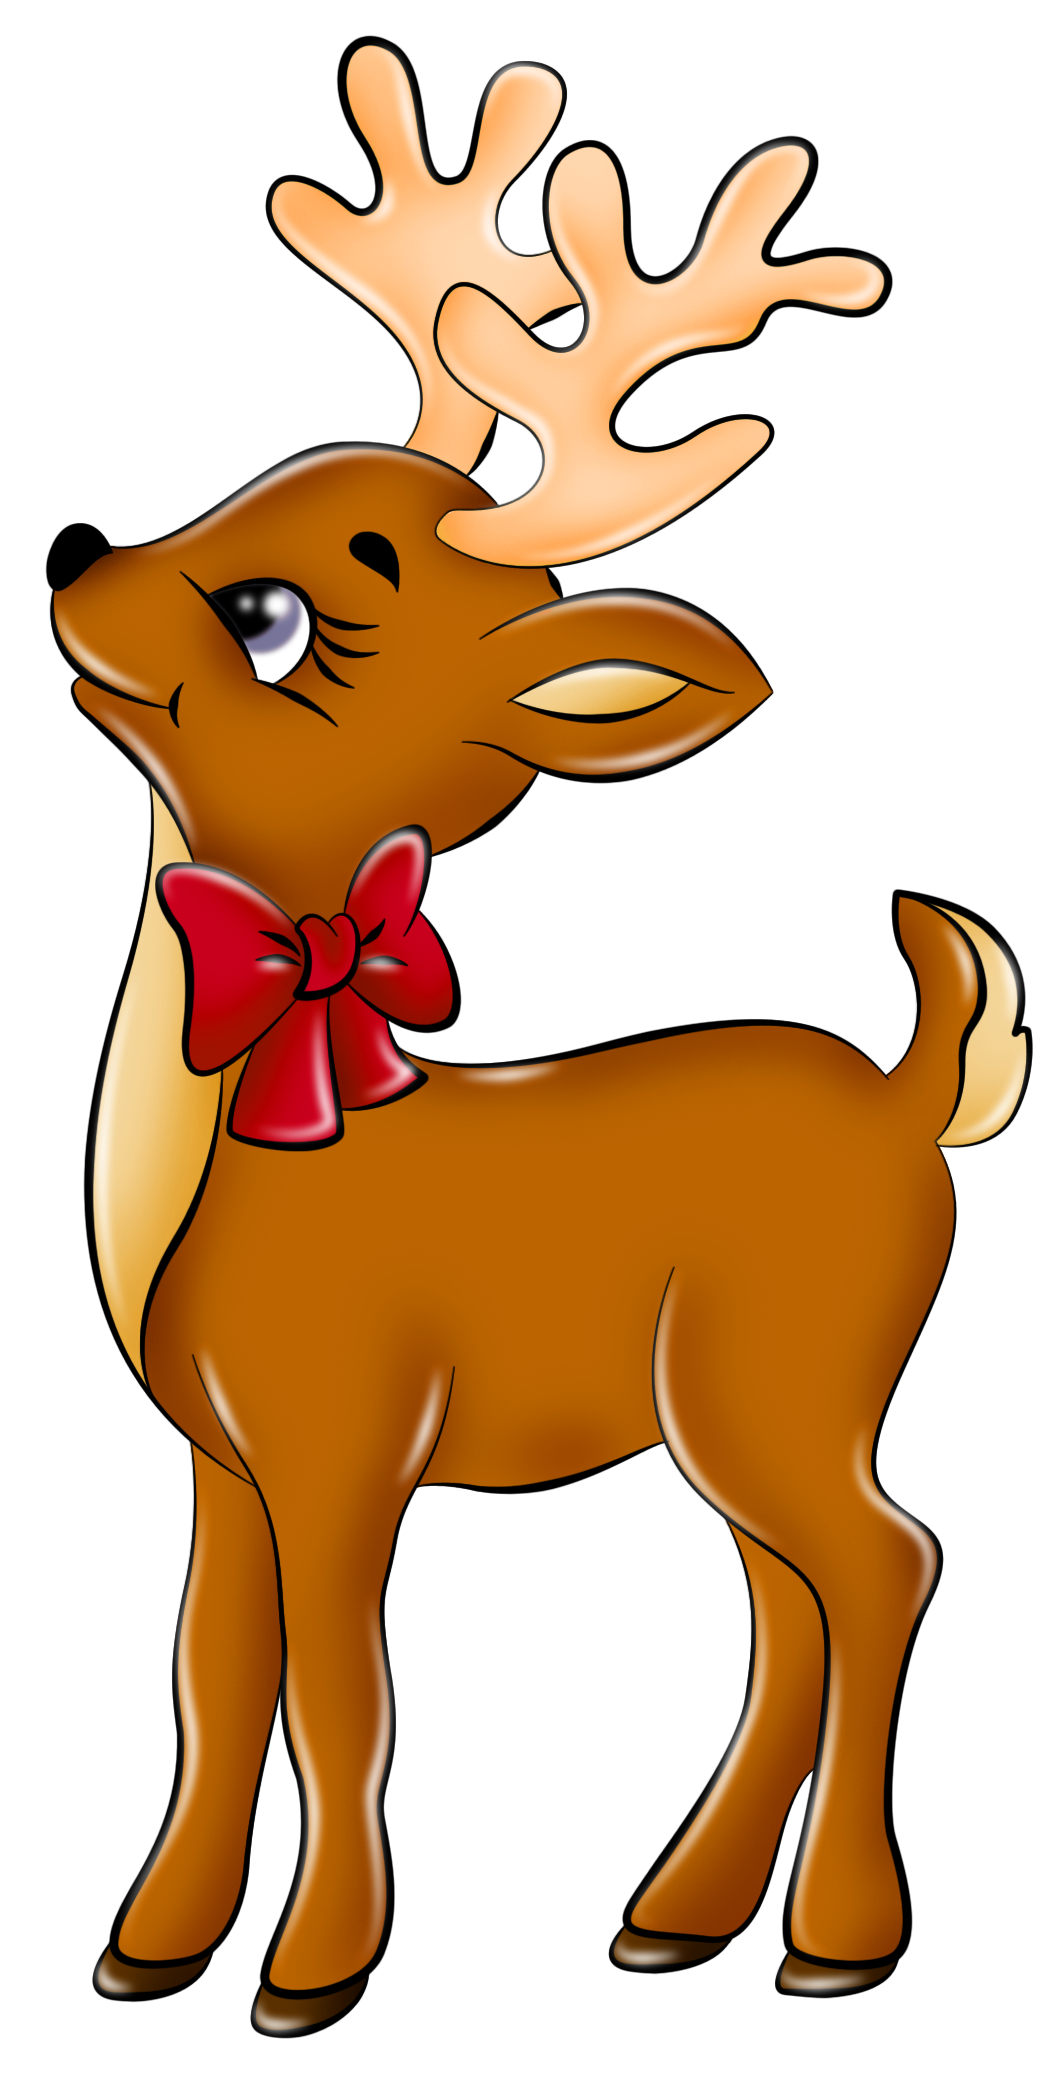 Rudolph clipart holiday. Free bad reindeer cliparts